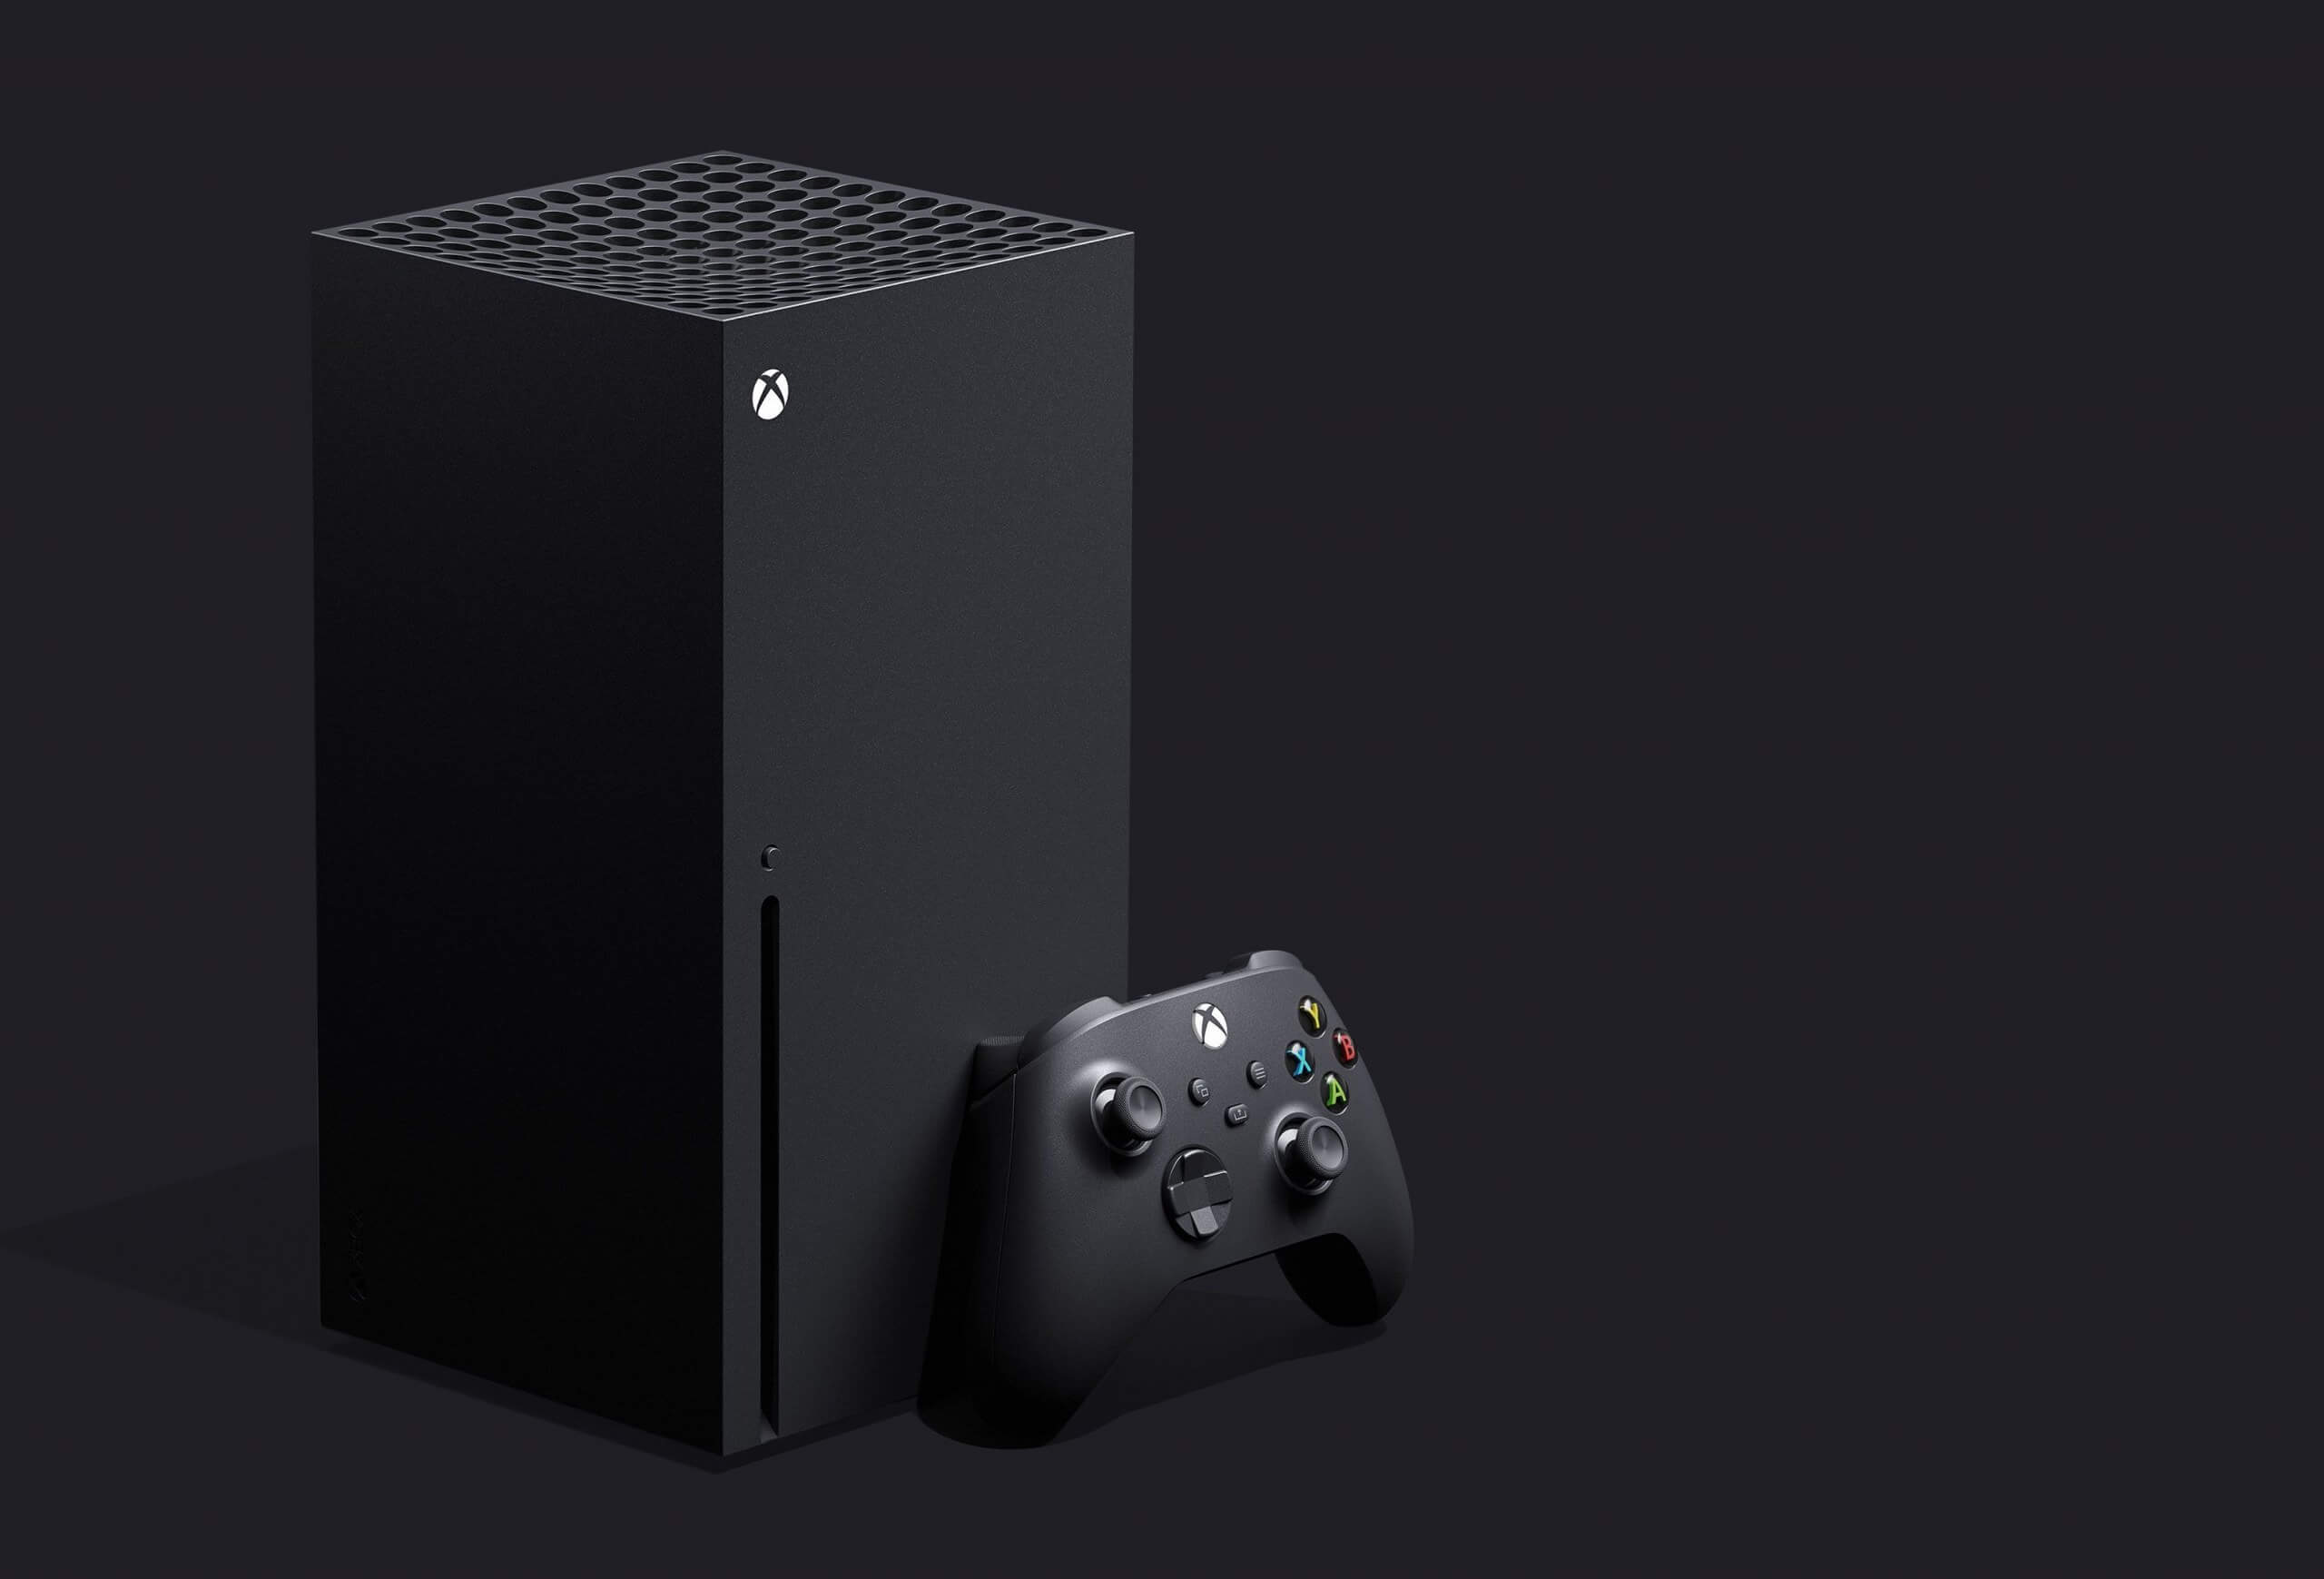 Current-gen console sales take a hammering as PS5 and Xbox Series X approach